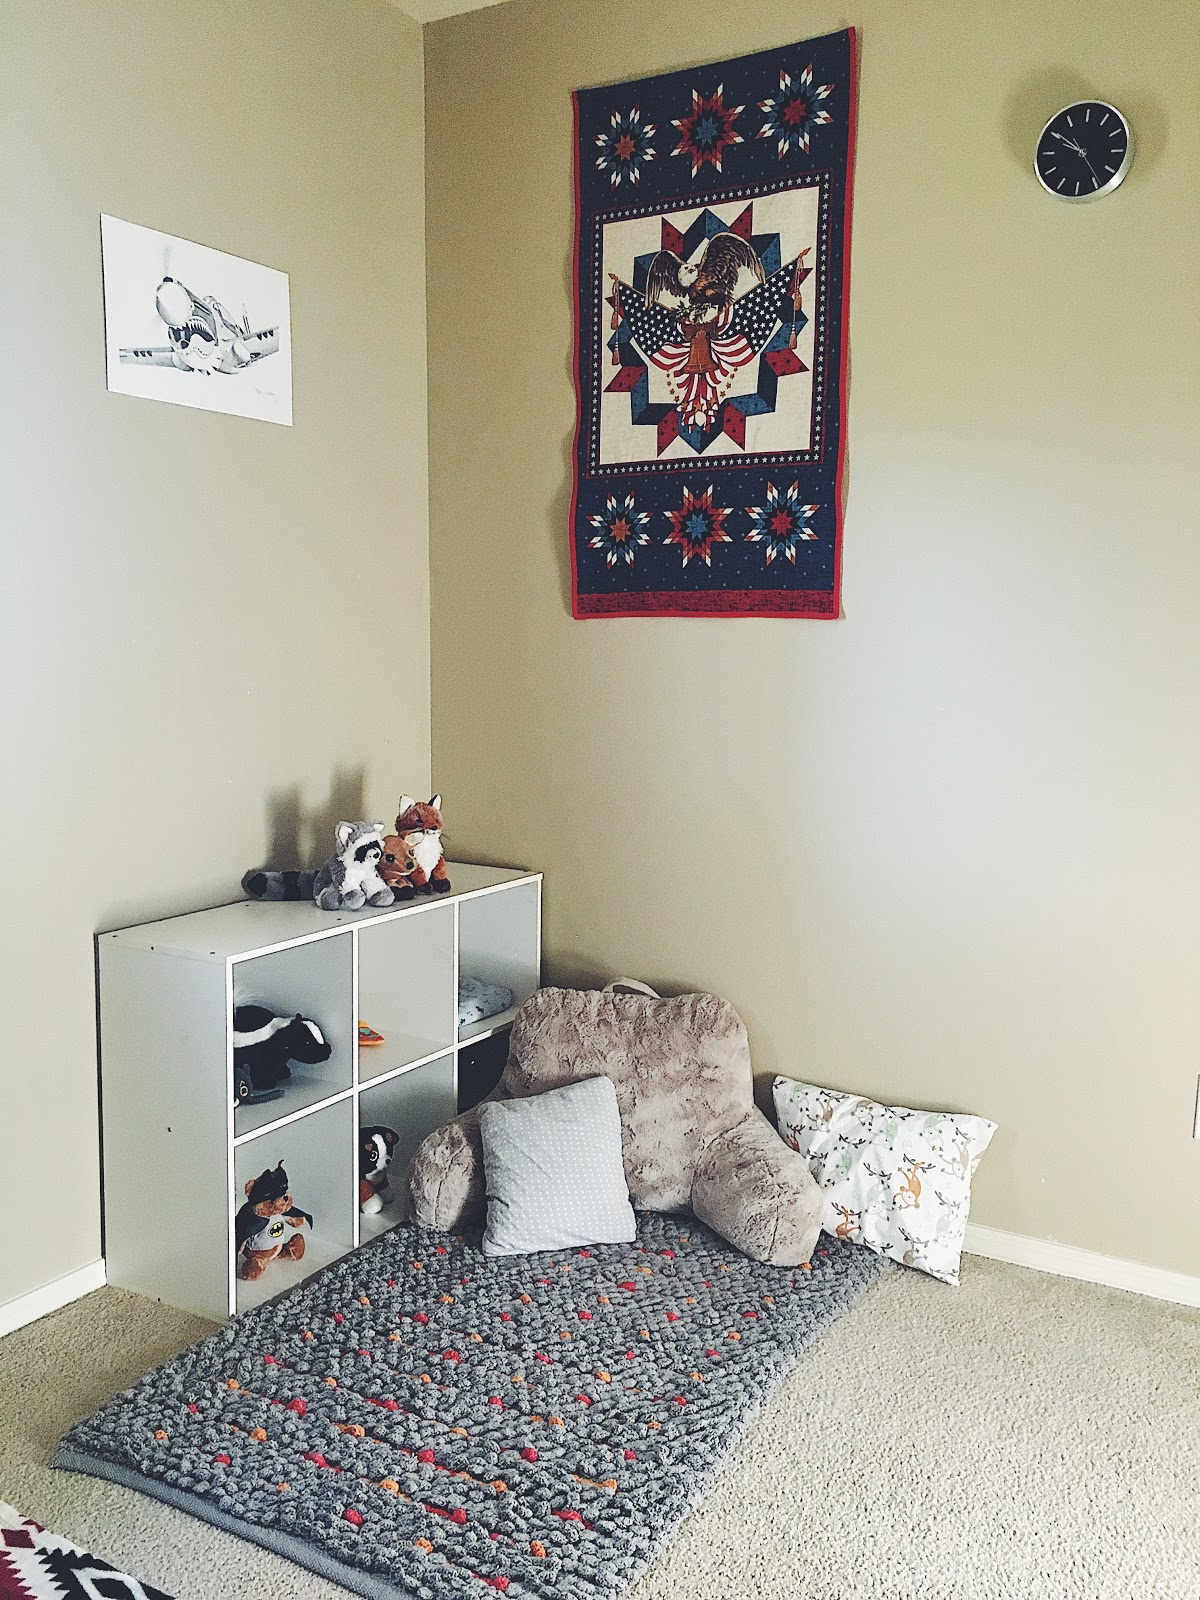 montessori floorbed our baby 39 s sleep arrangement the. Black Bedroom Furniture Sets. Home Design Ideas